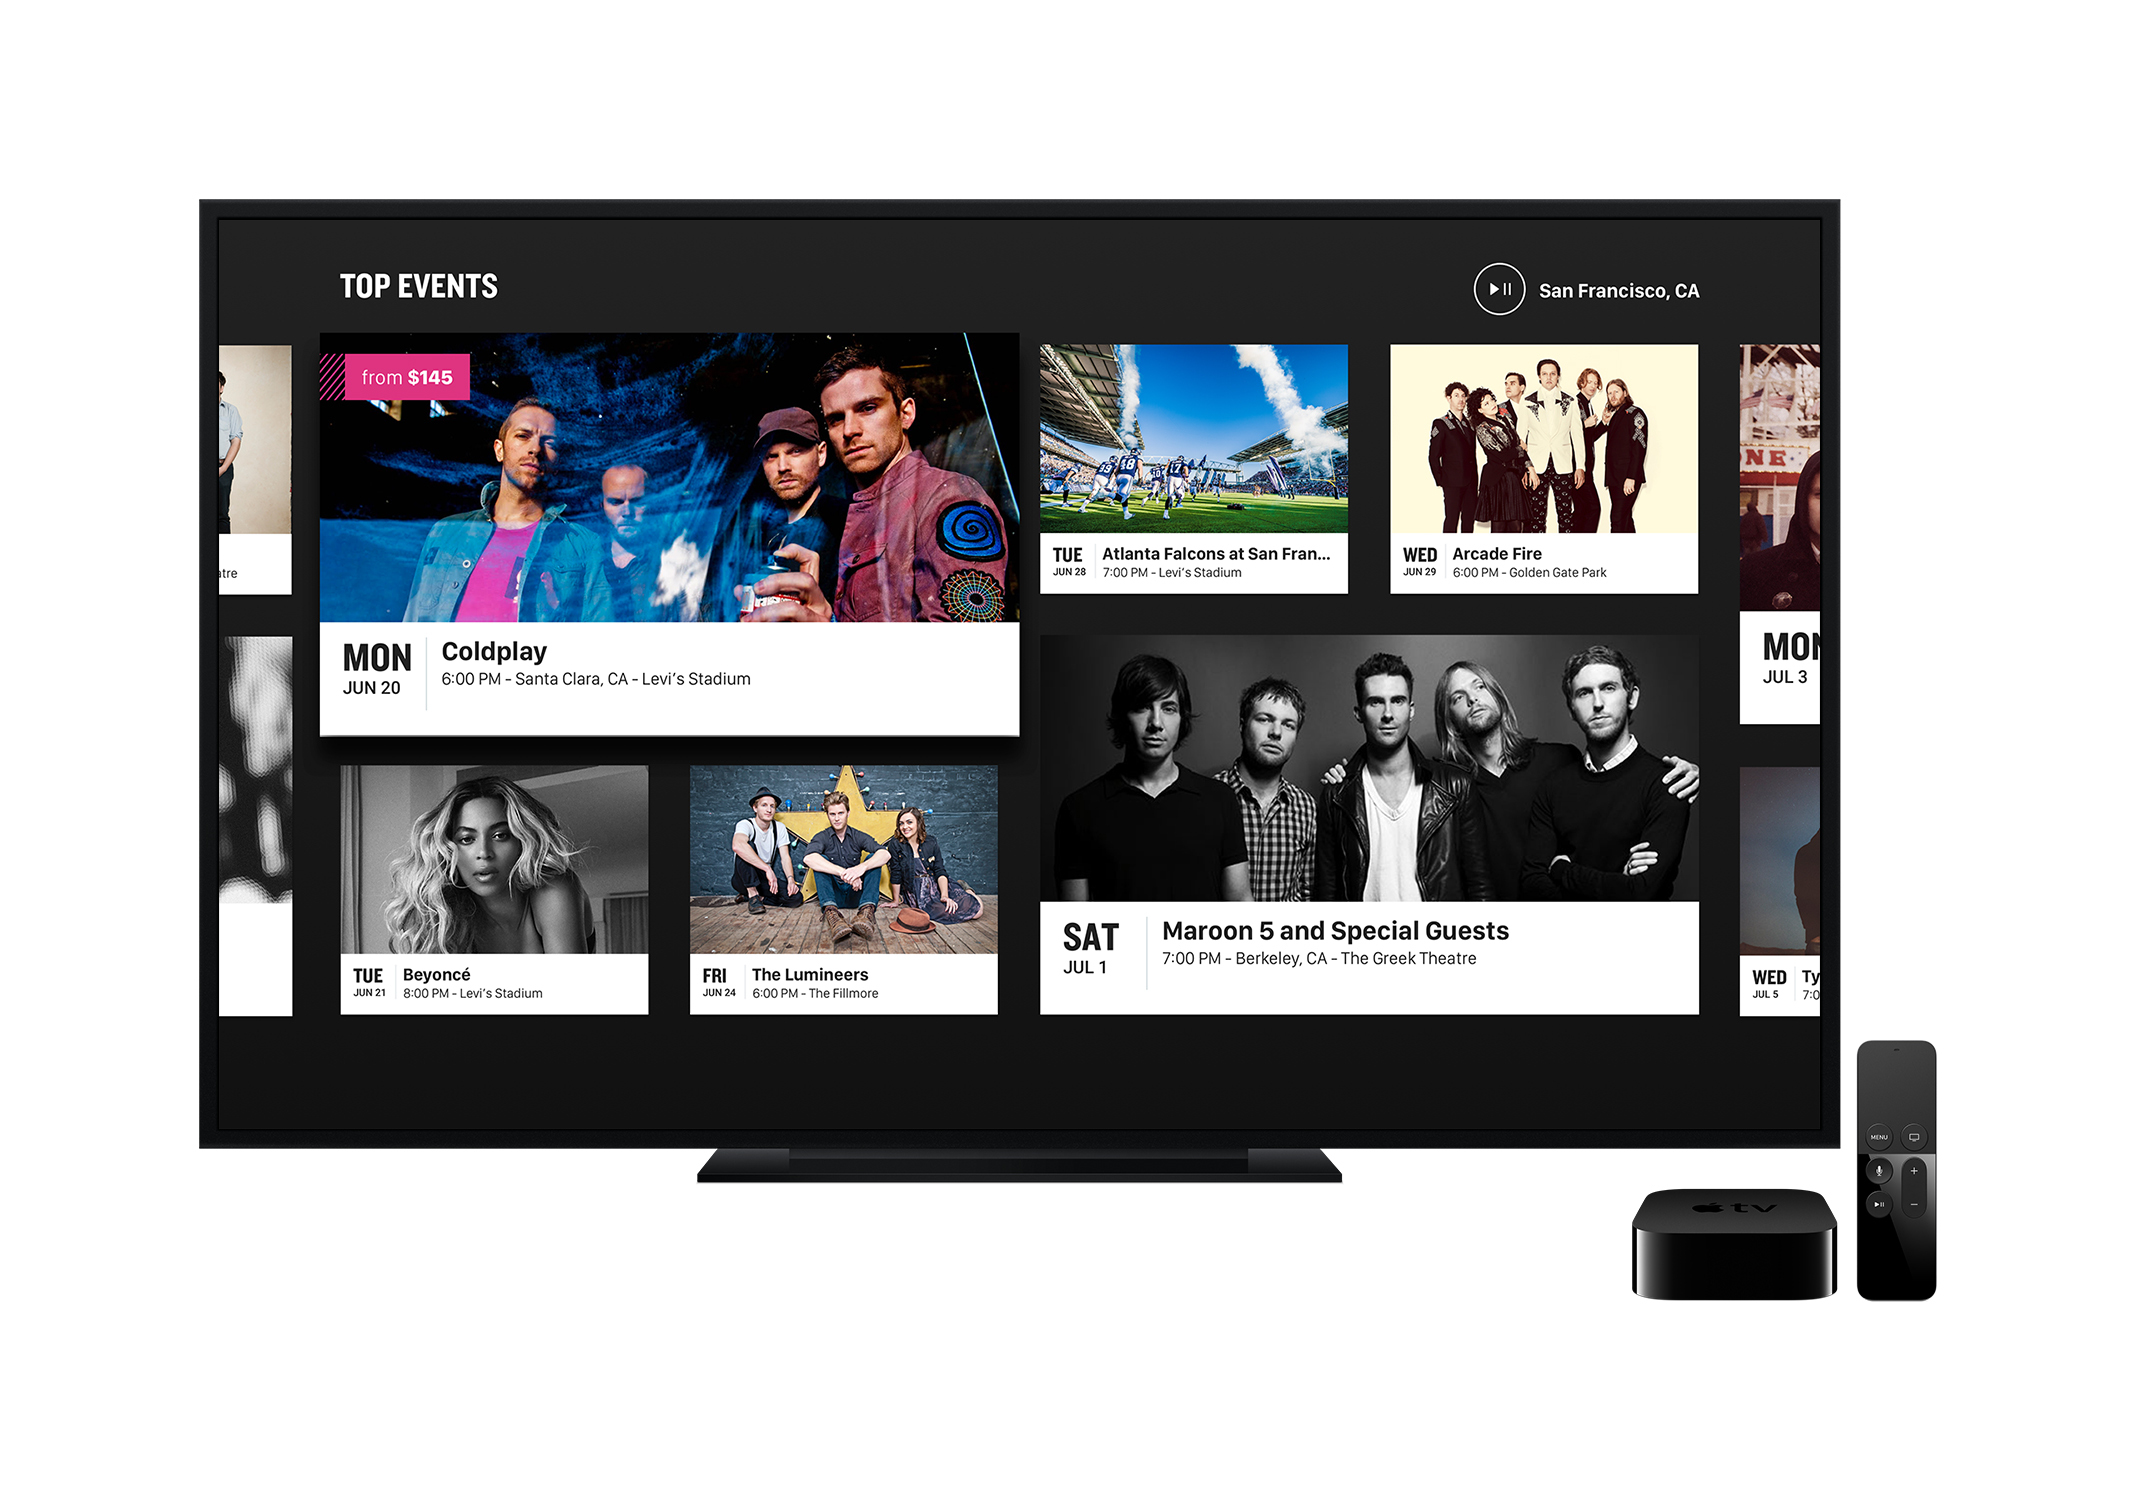 techcrunch.com - Romain Dillet - Apple could charge $9.99 per month each for HBO, Showtime and Starz